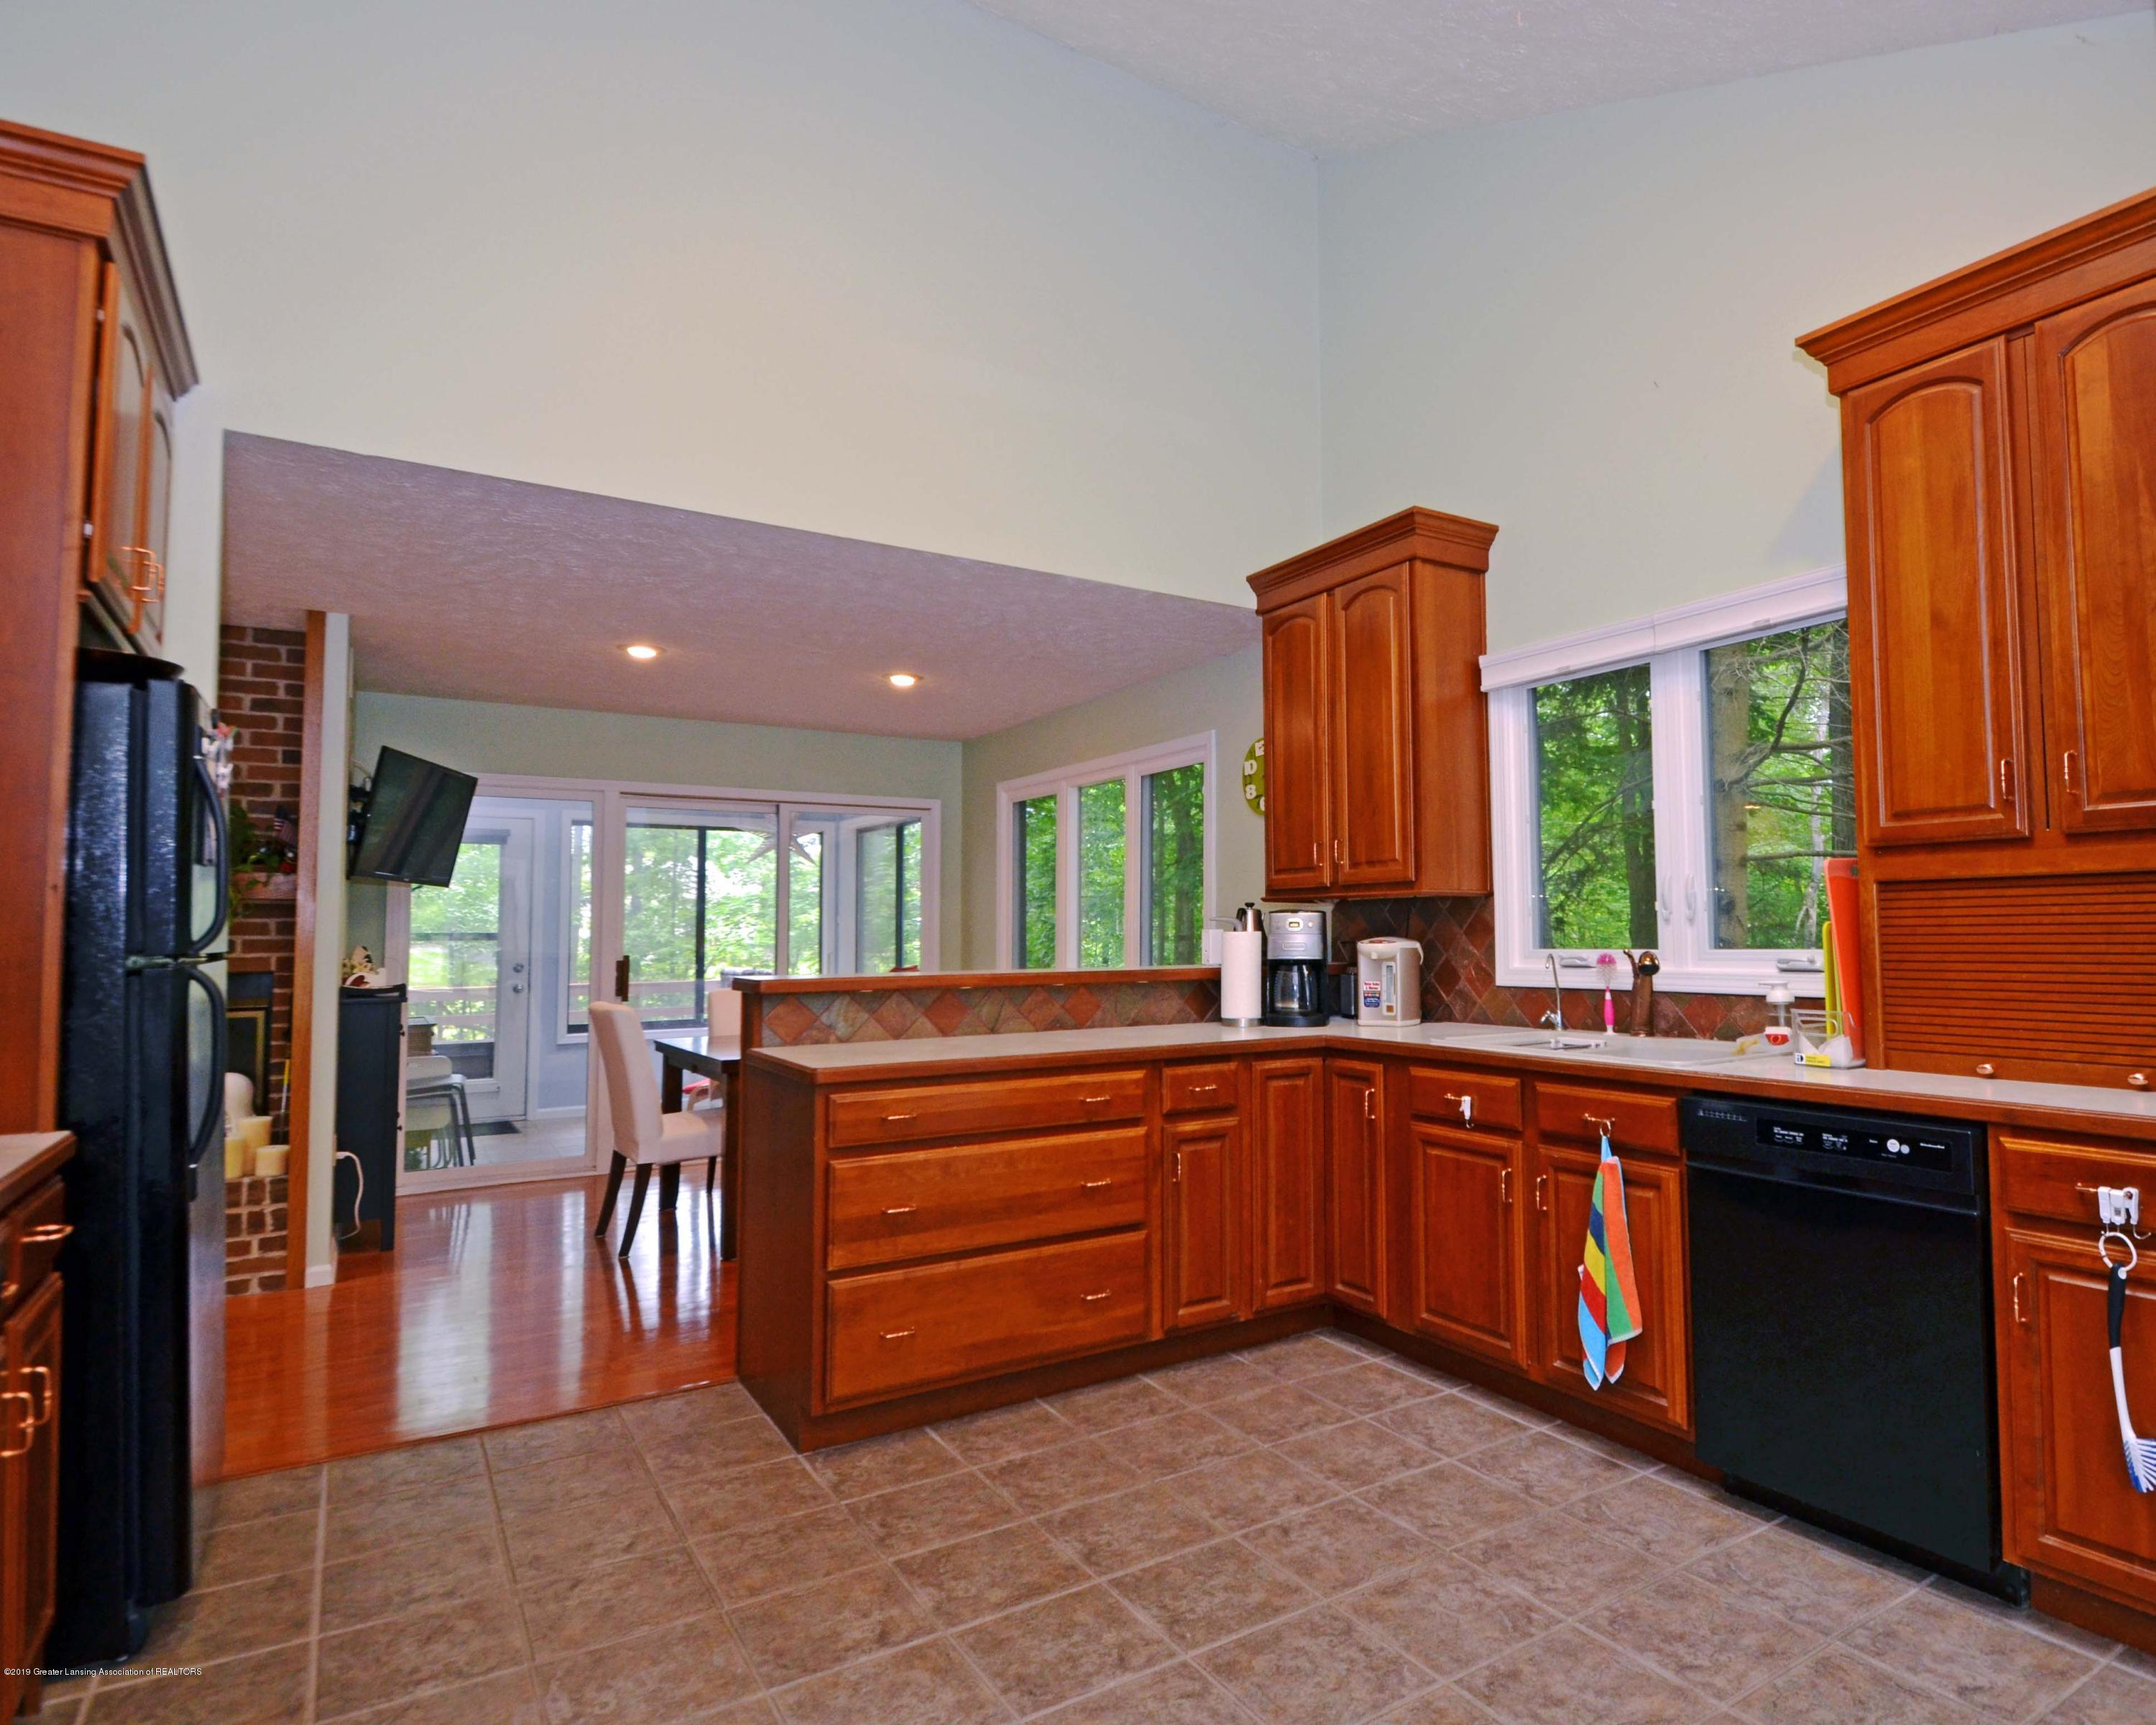 2364 Emerald Forest Cir - Kitchen - 11